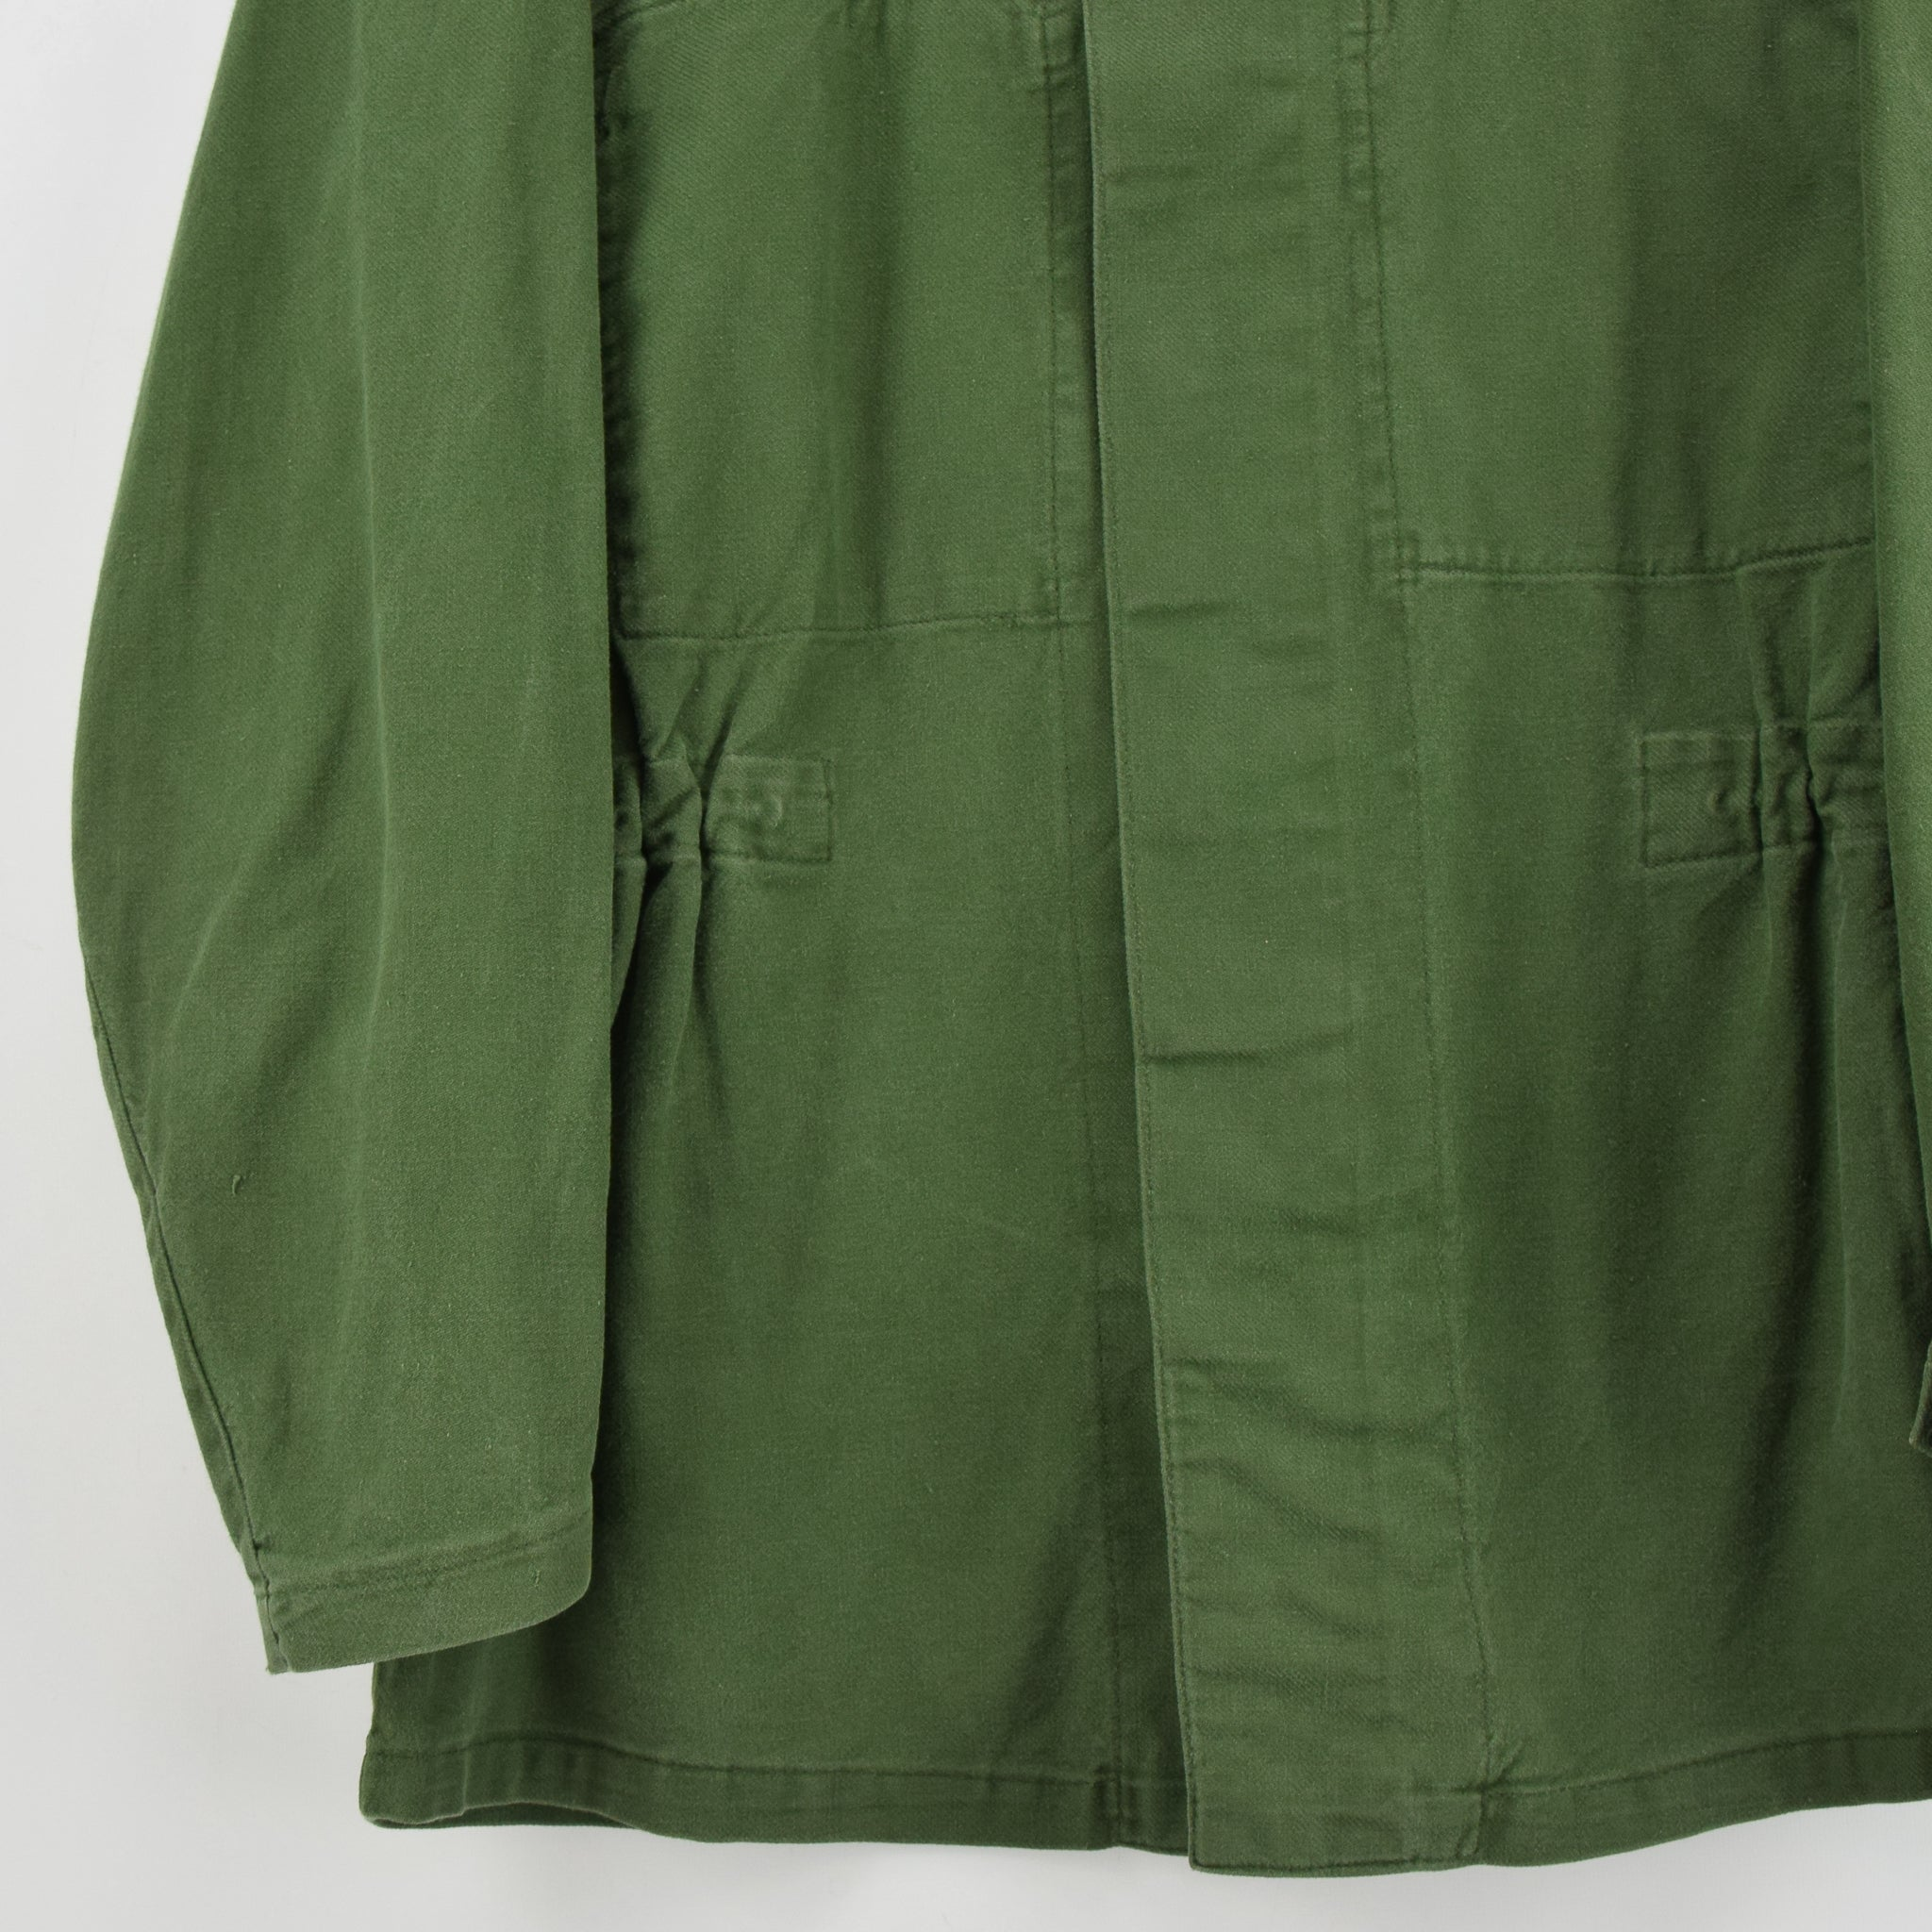 Vintage Swedish Worker Style Distressed Green Military Field Shirt Jacket M front hem